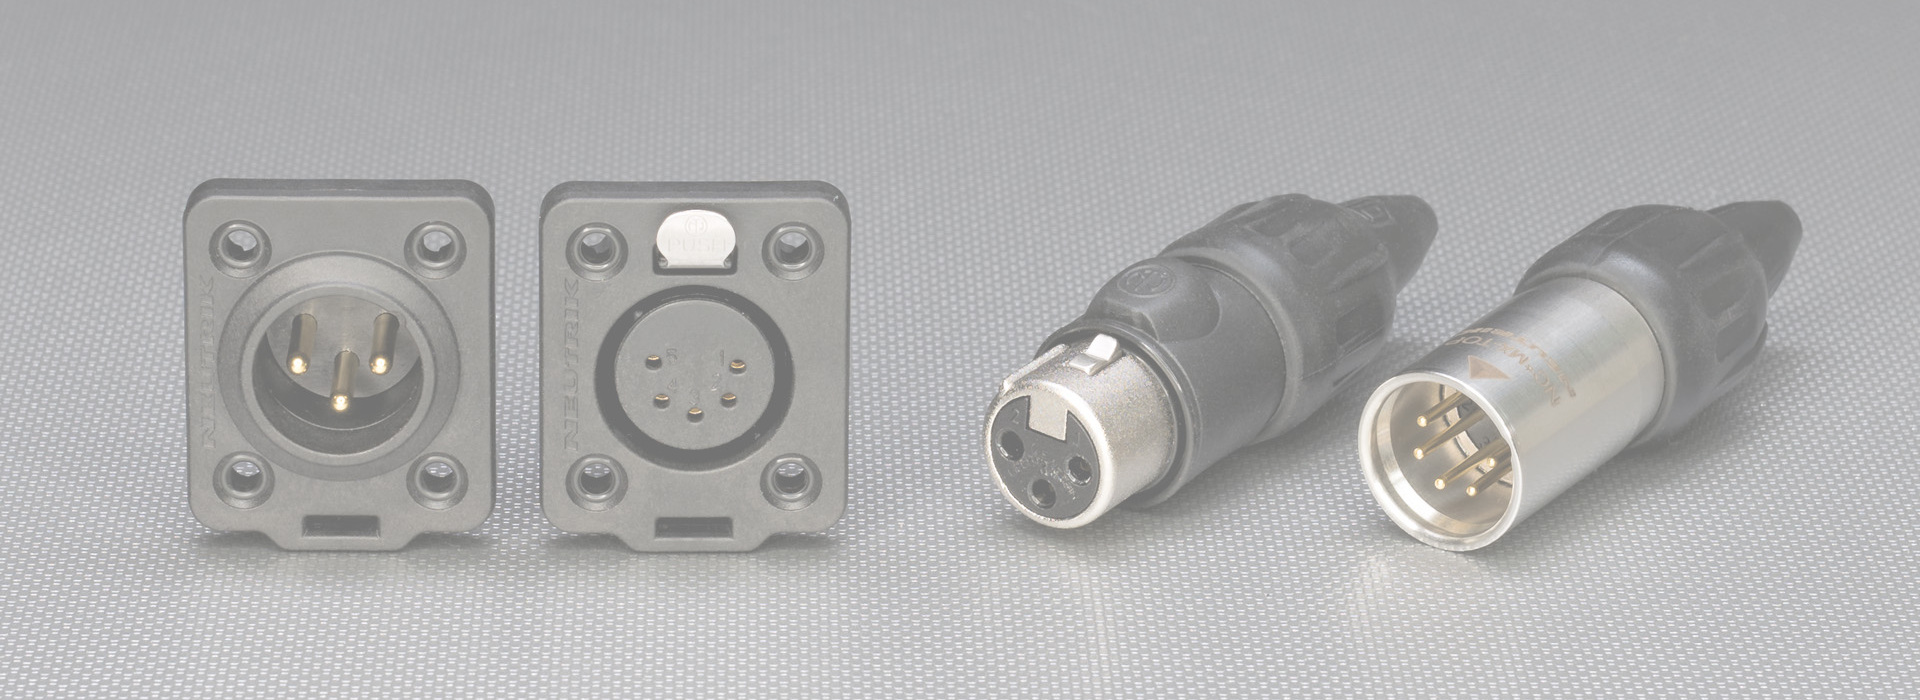 NEUTRIK Image new products XLR TOP 1920 x 1080.jpg